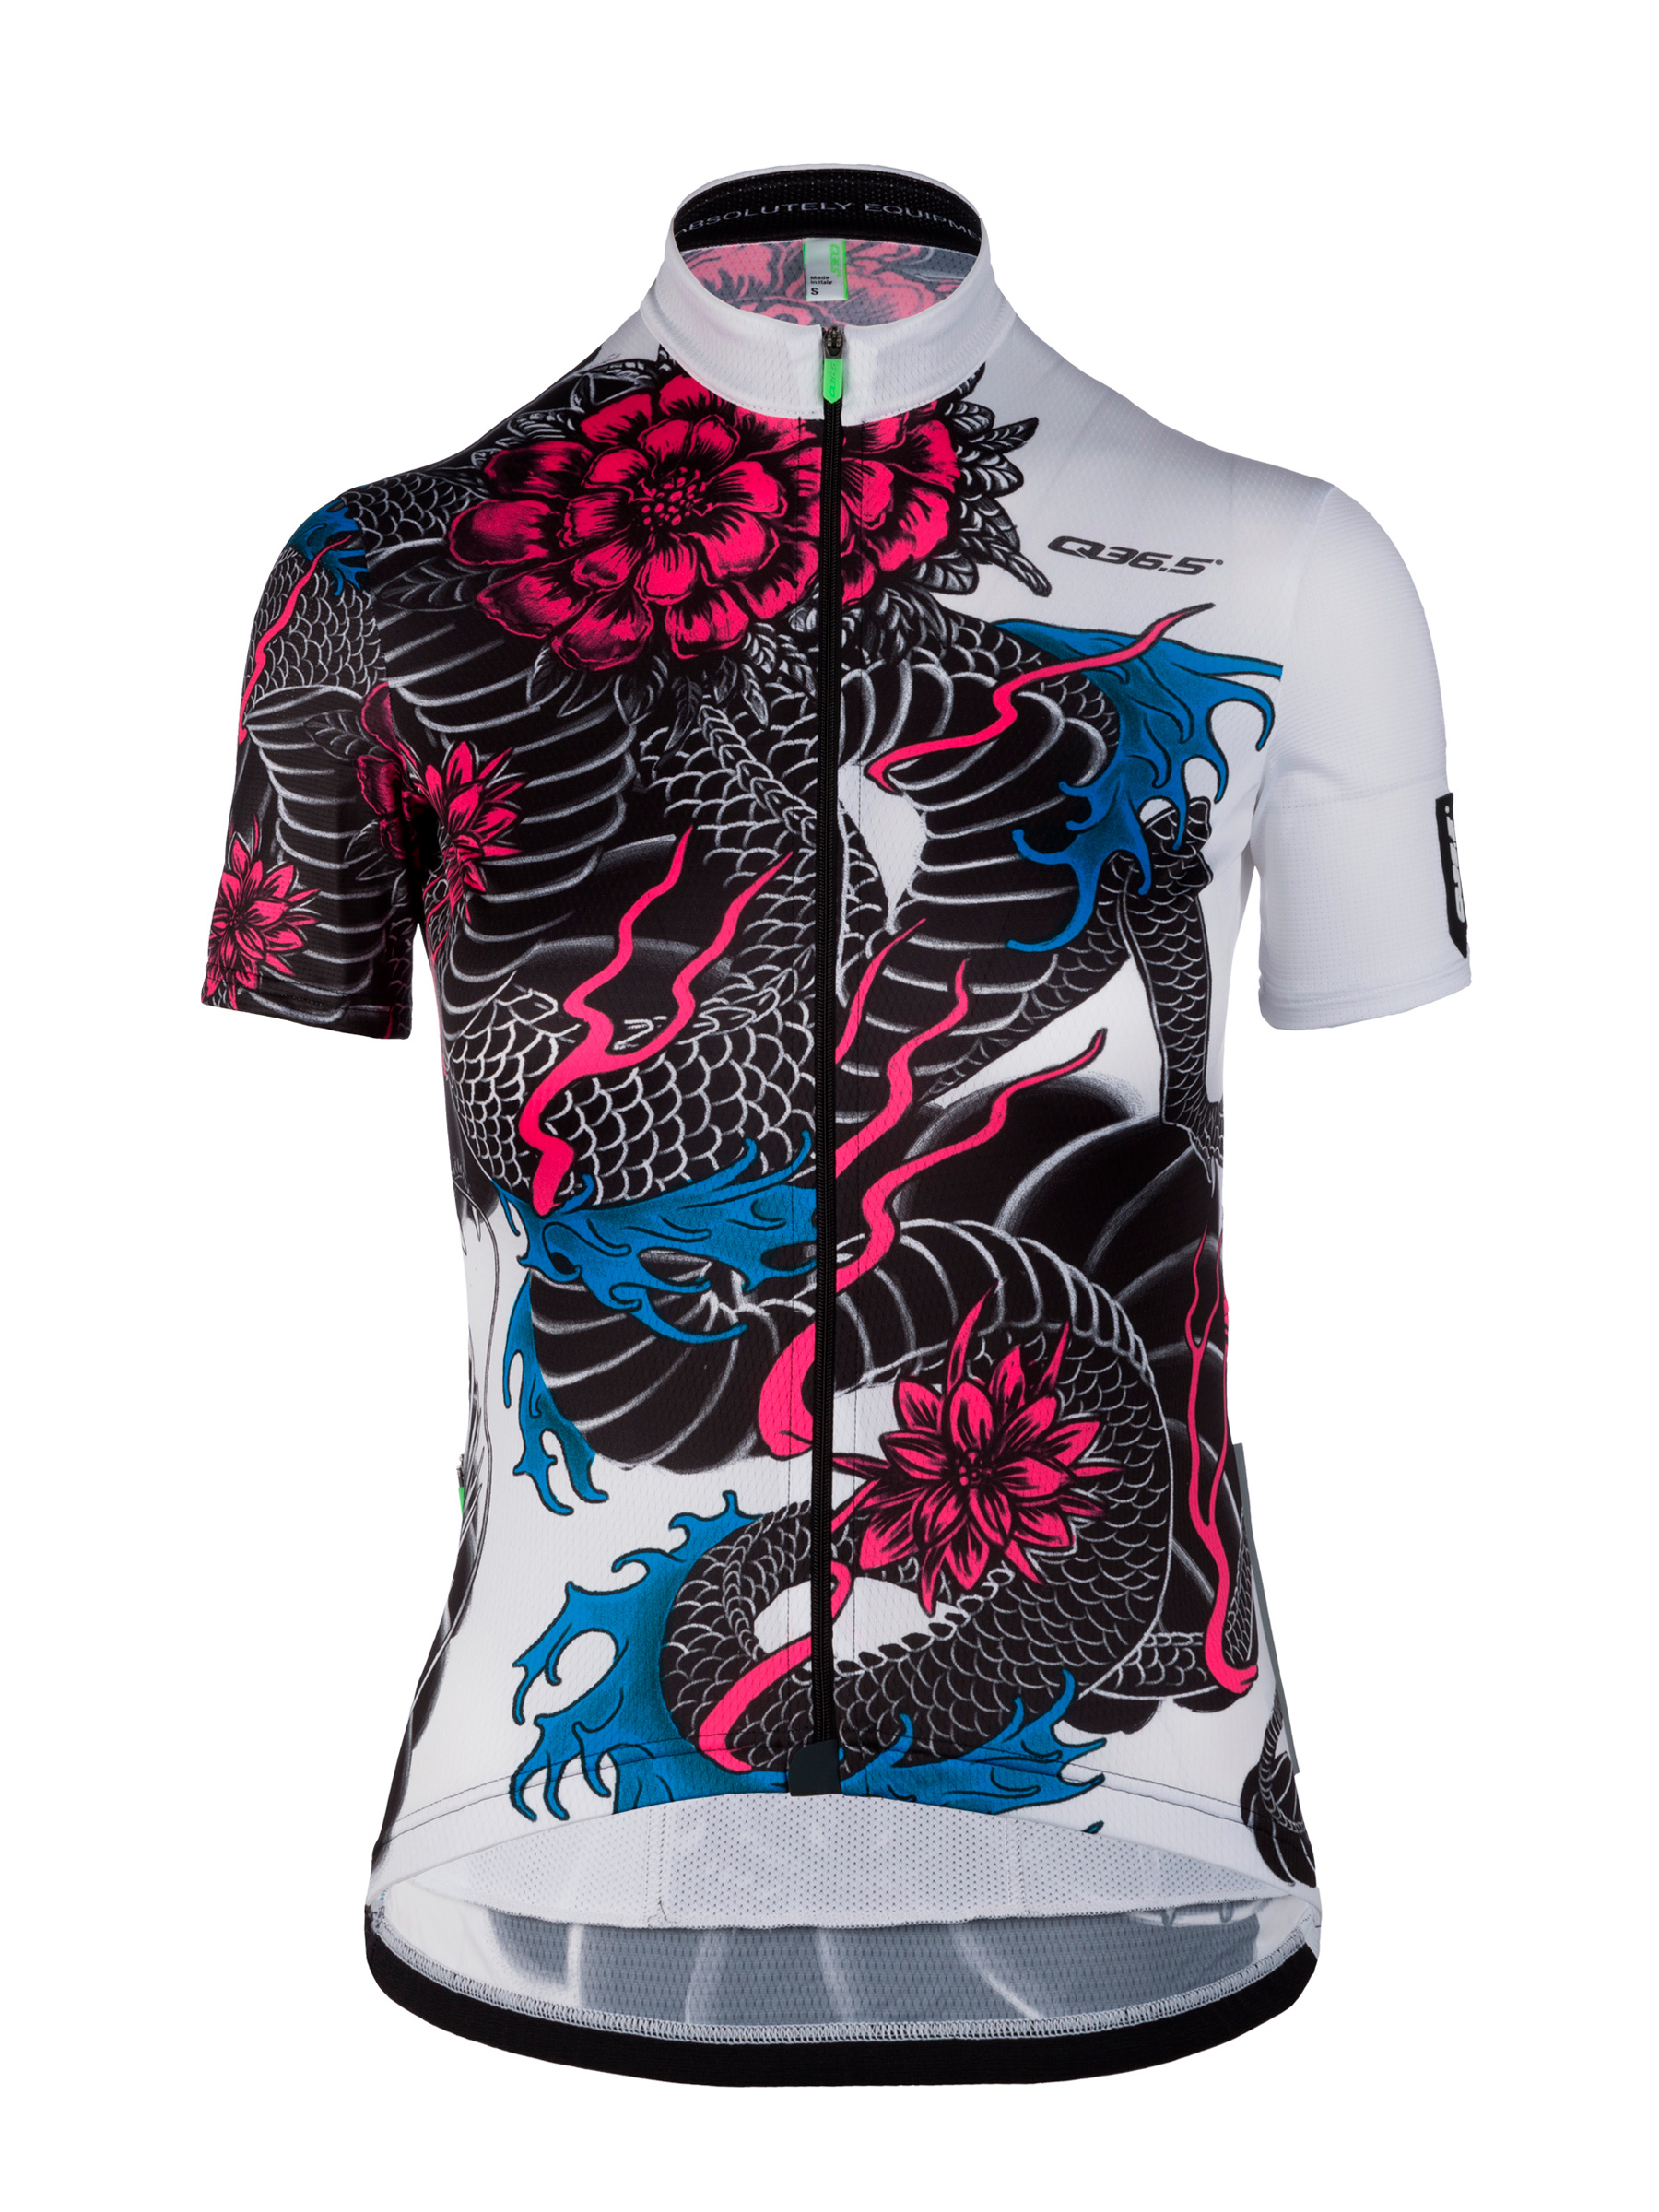 Womens cycling graphic Jersey short sleeve G1 Dragon Q36.5